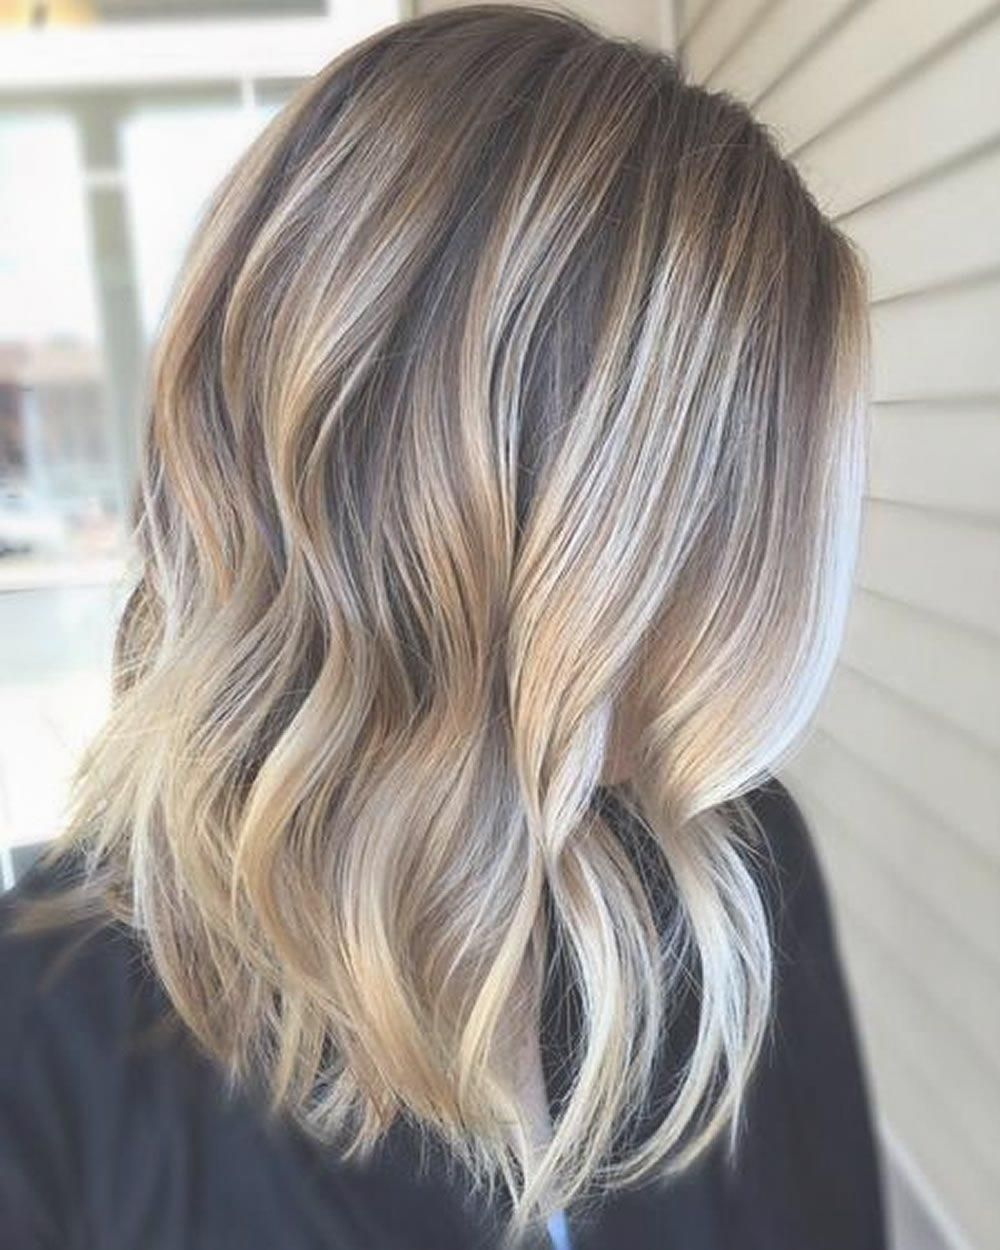 Ombre Colored Short Frisuren Fur Den Sommer 2018 2019 Sommer